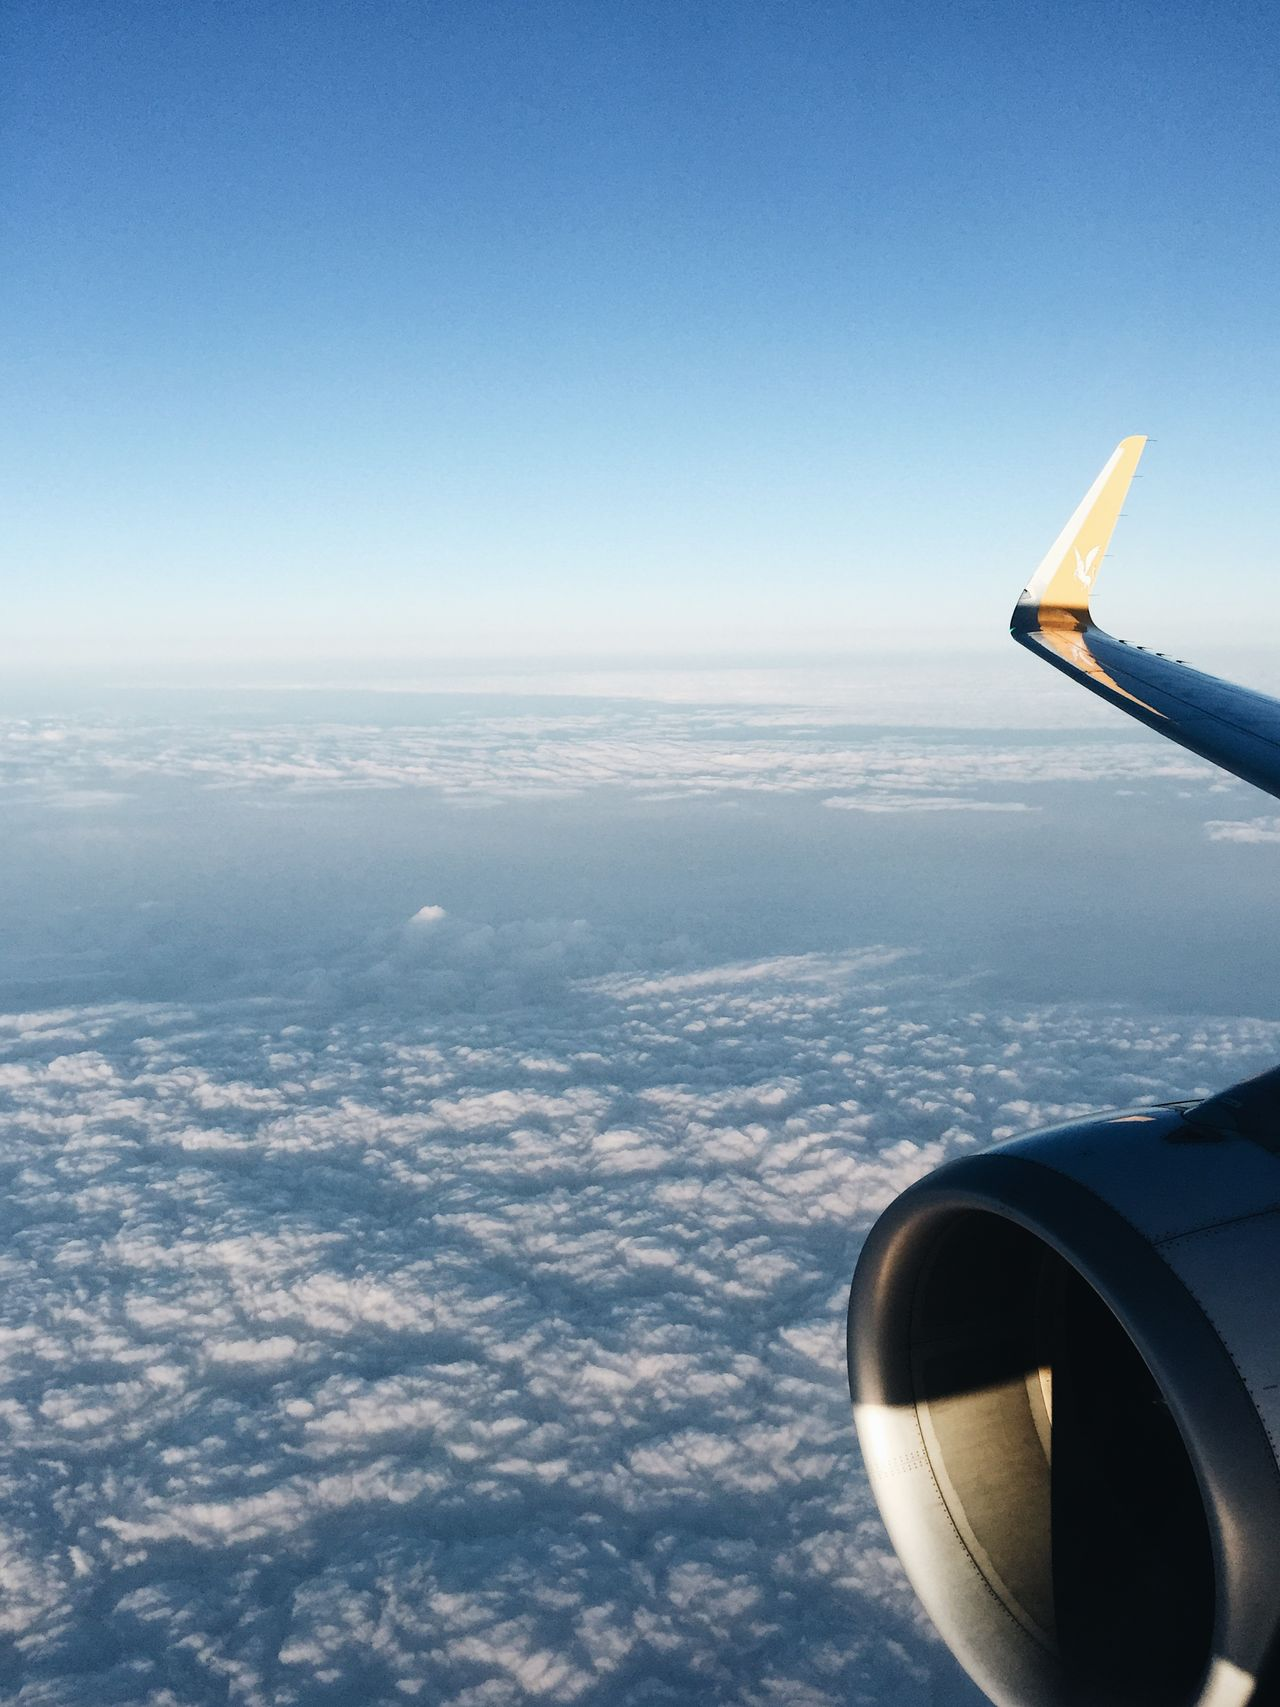 Airplane wing and aereal view at Turkey Aereal View Aerial View Air Vehicle Aircraft Wing Airplane Airplane Wing Beautiful Beauty In Nature Beauty In Nature Flying Jet Engine Journey Landscape Mid-air Mode Of Transport Nature Pegasus Pegasus Airlines Scenics Transportation Travel Travel